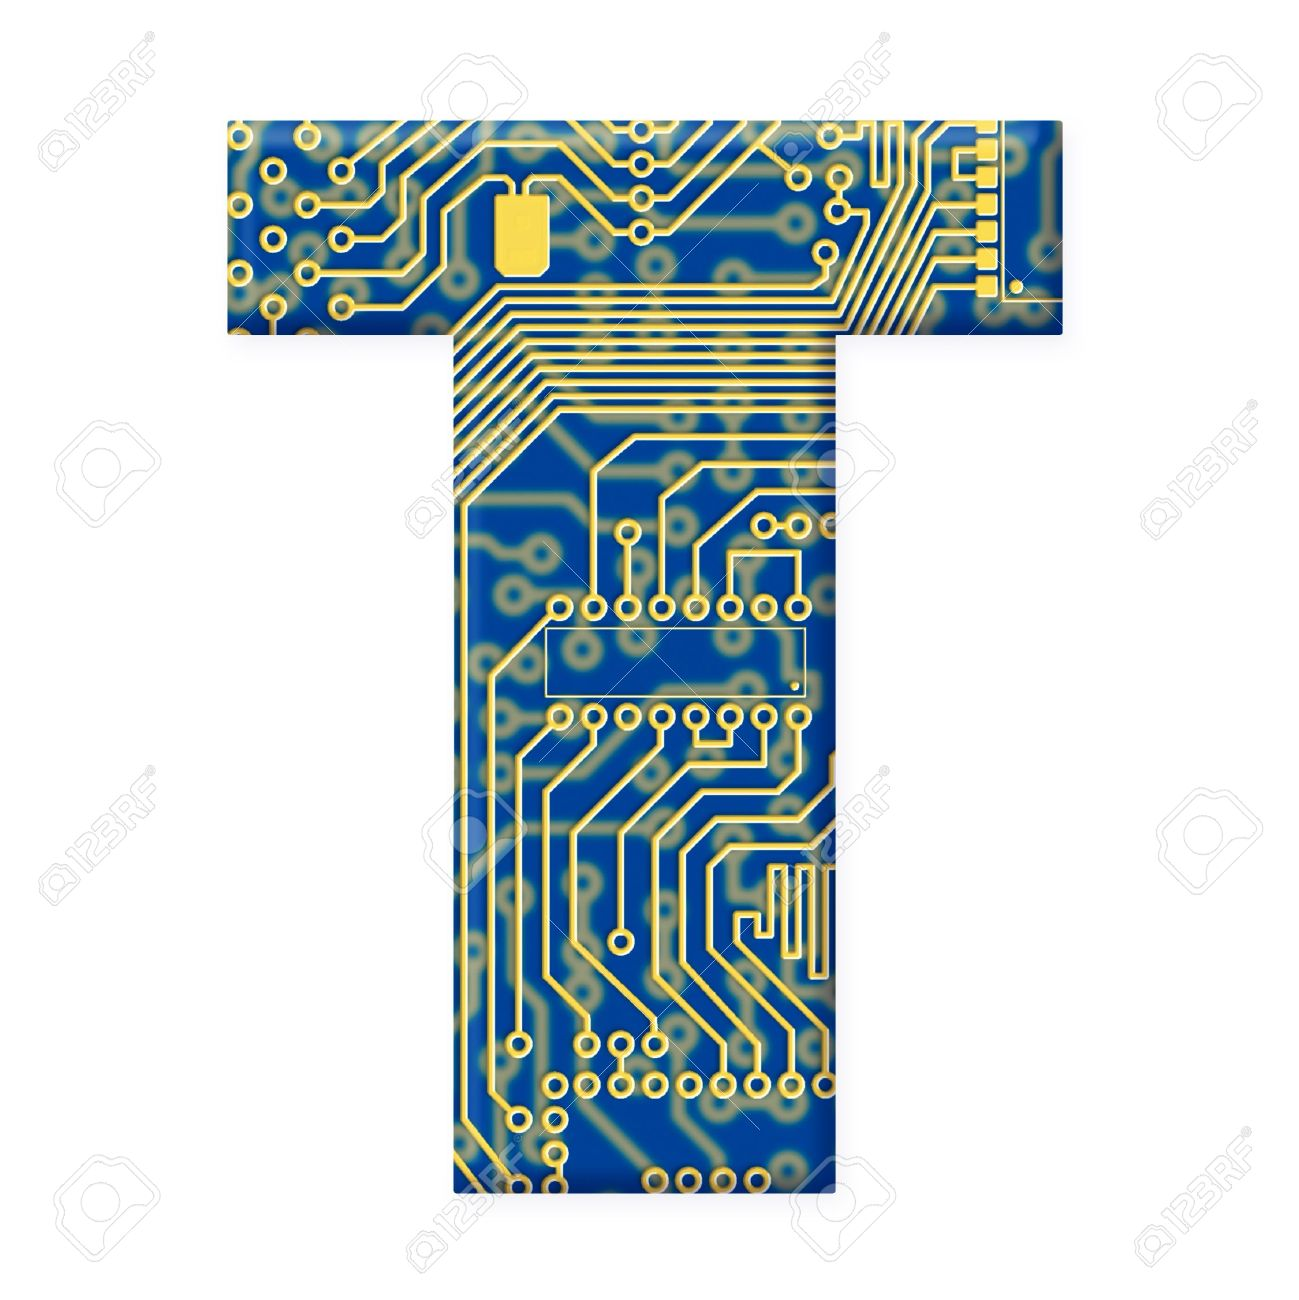 One letter from the electronic technology circuit board alphabet on a white background - T Stock Photo - 6353985